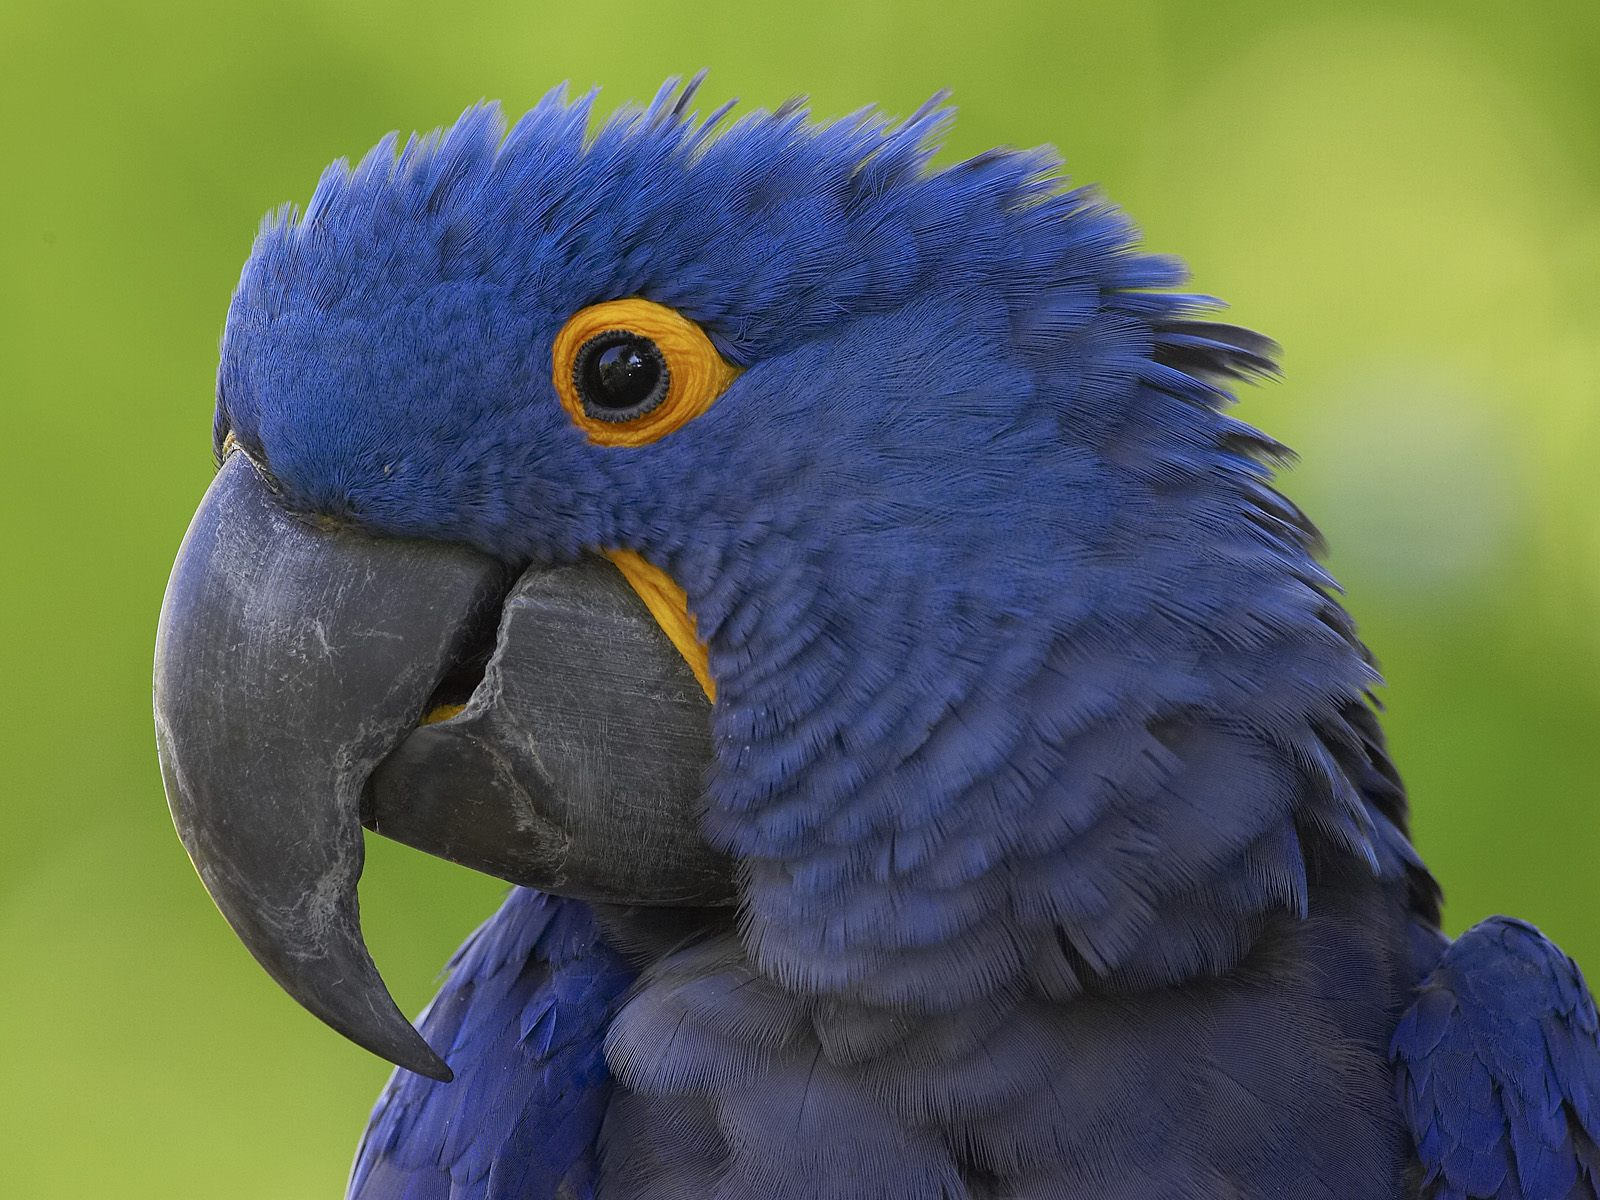 Royalty-Free photo: Blue and yellow macaw bird flying ... |Blue Macaw Parrot Flying